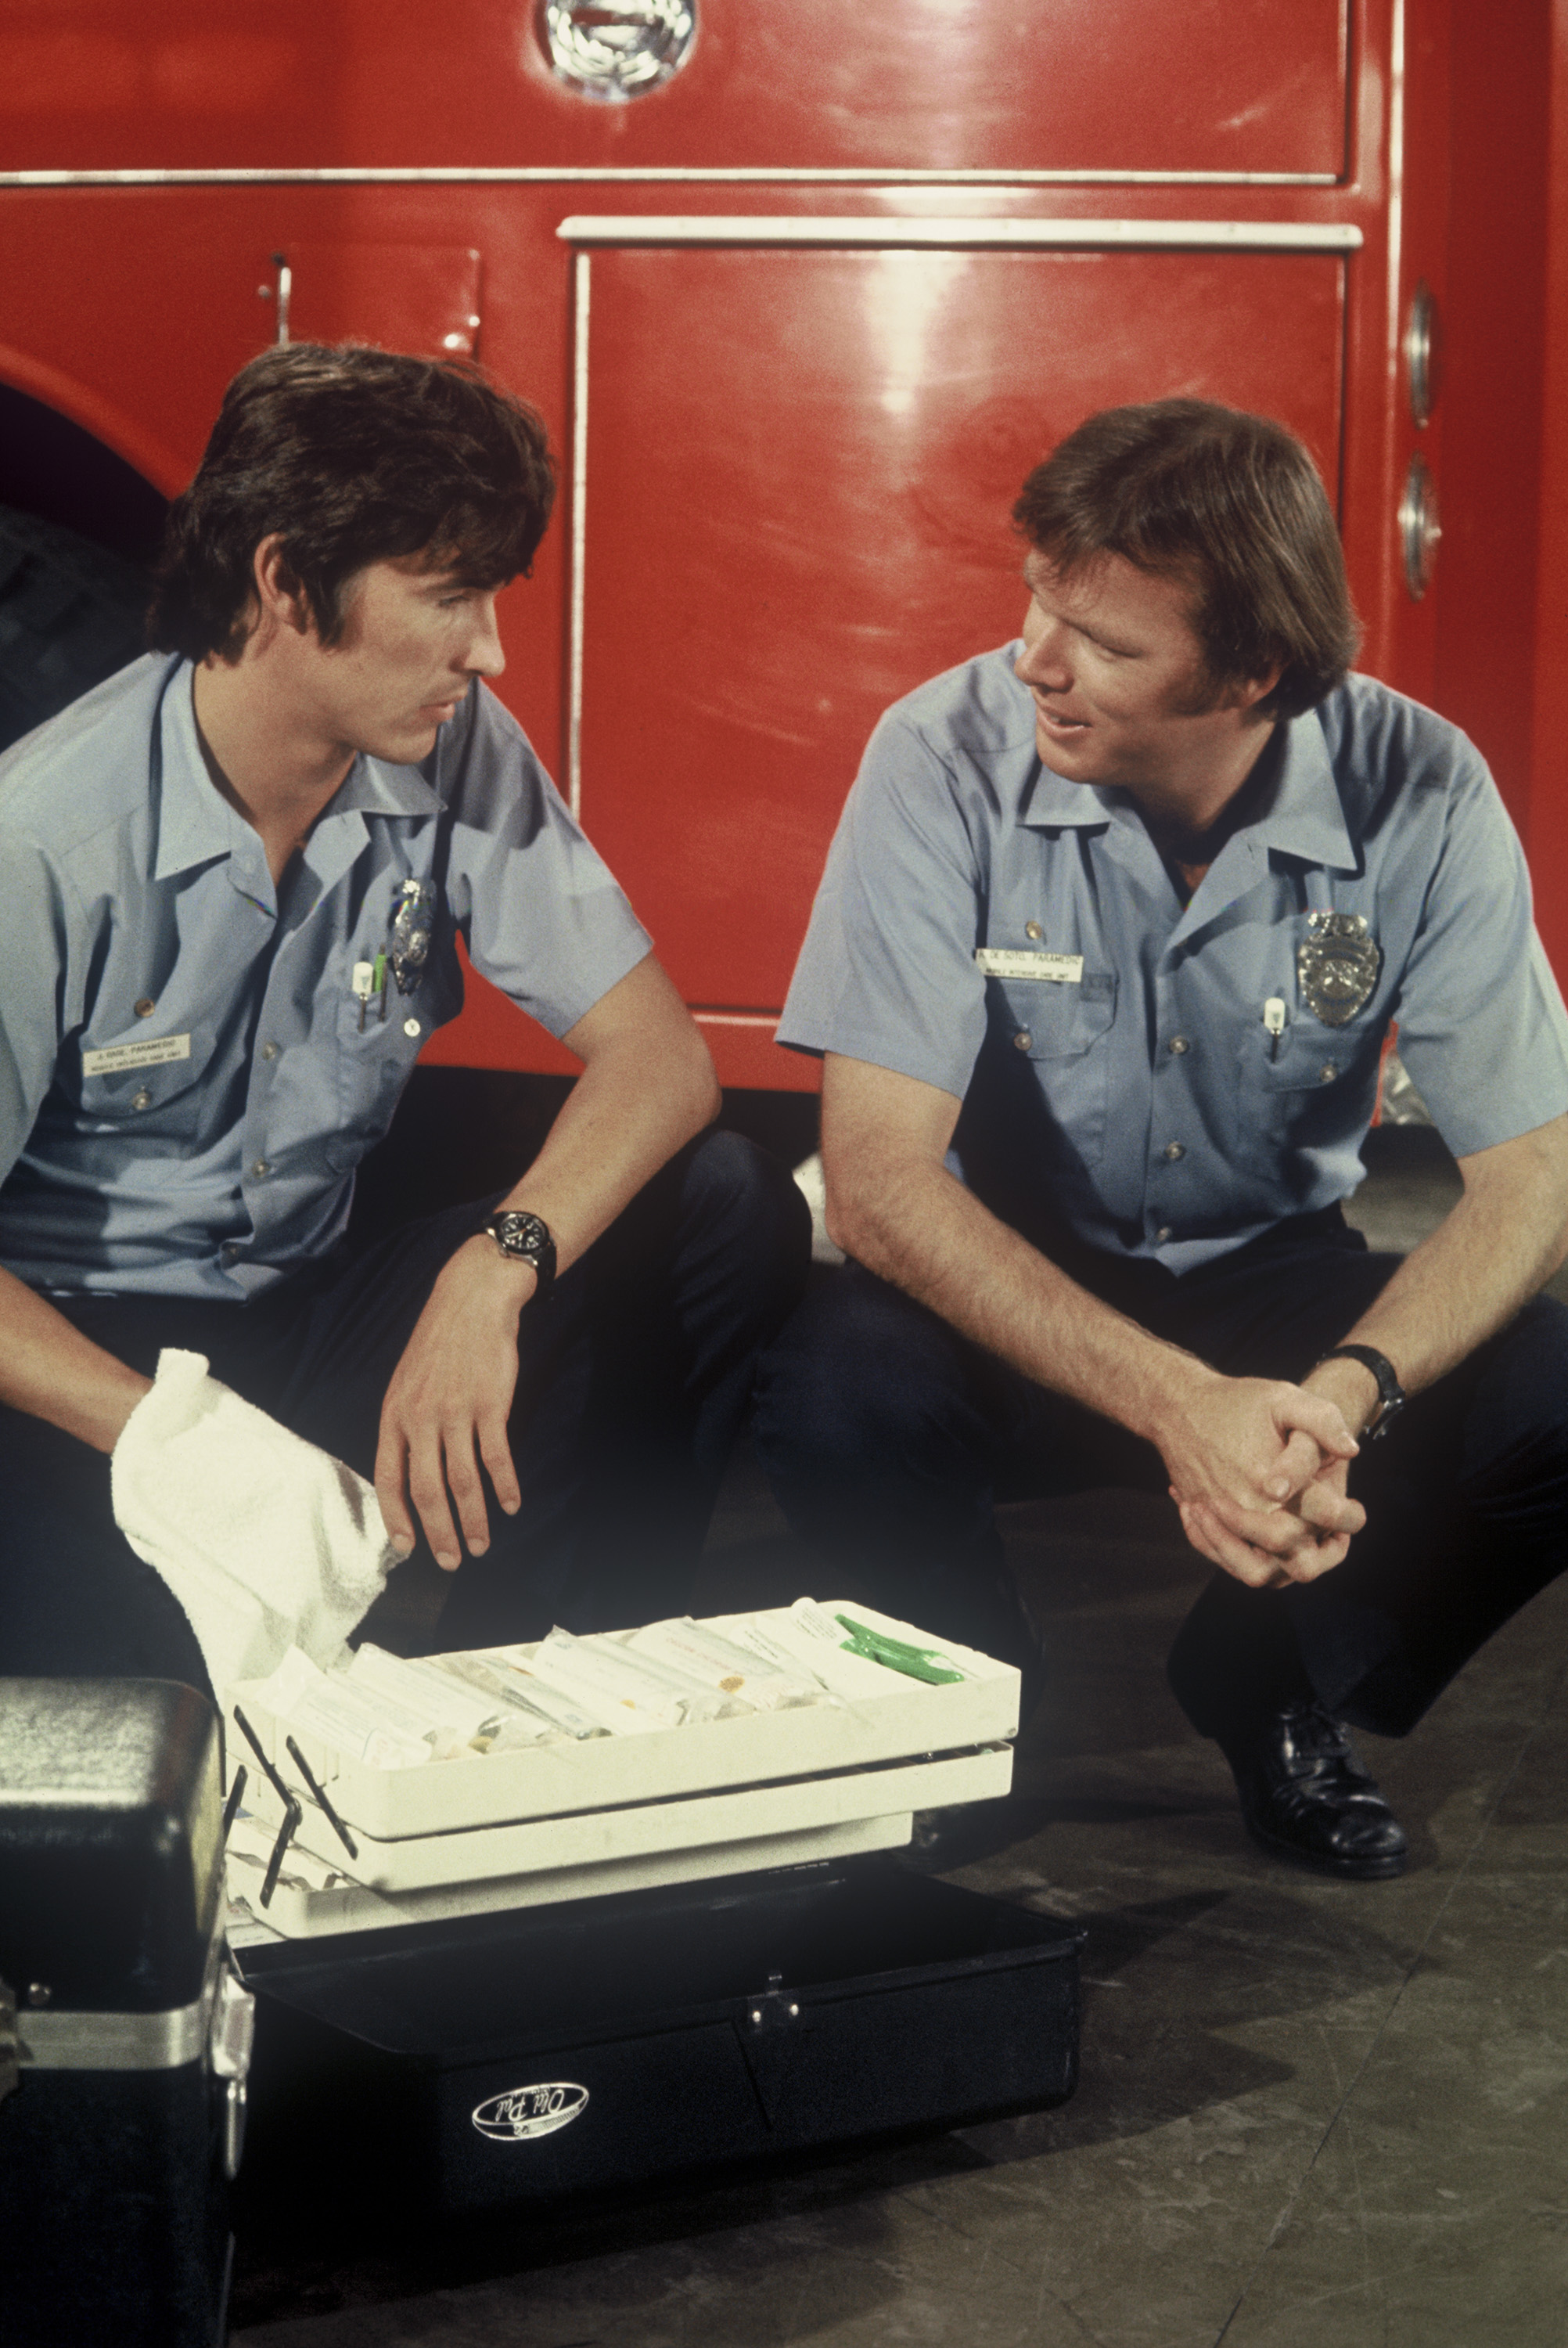 The show EMERGENCY! raised awareness of paramedics when the profession was just getting going. (L-R) Paramedics on the show John Gage and Roy DeSoto played by Randolph Mantooth and Kevin Tighe, respectively, in an episode that aired Nov. 3, 1973.